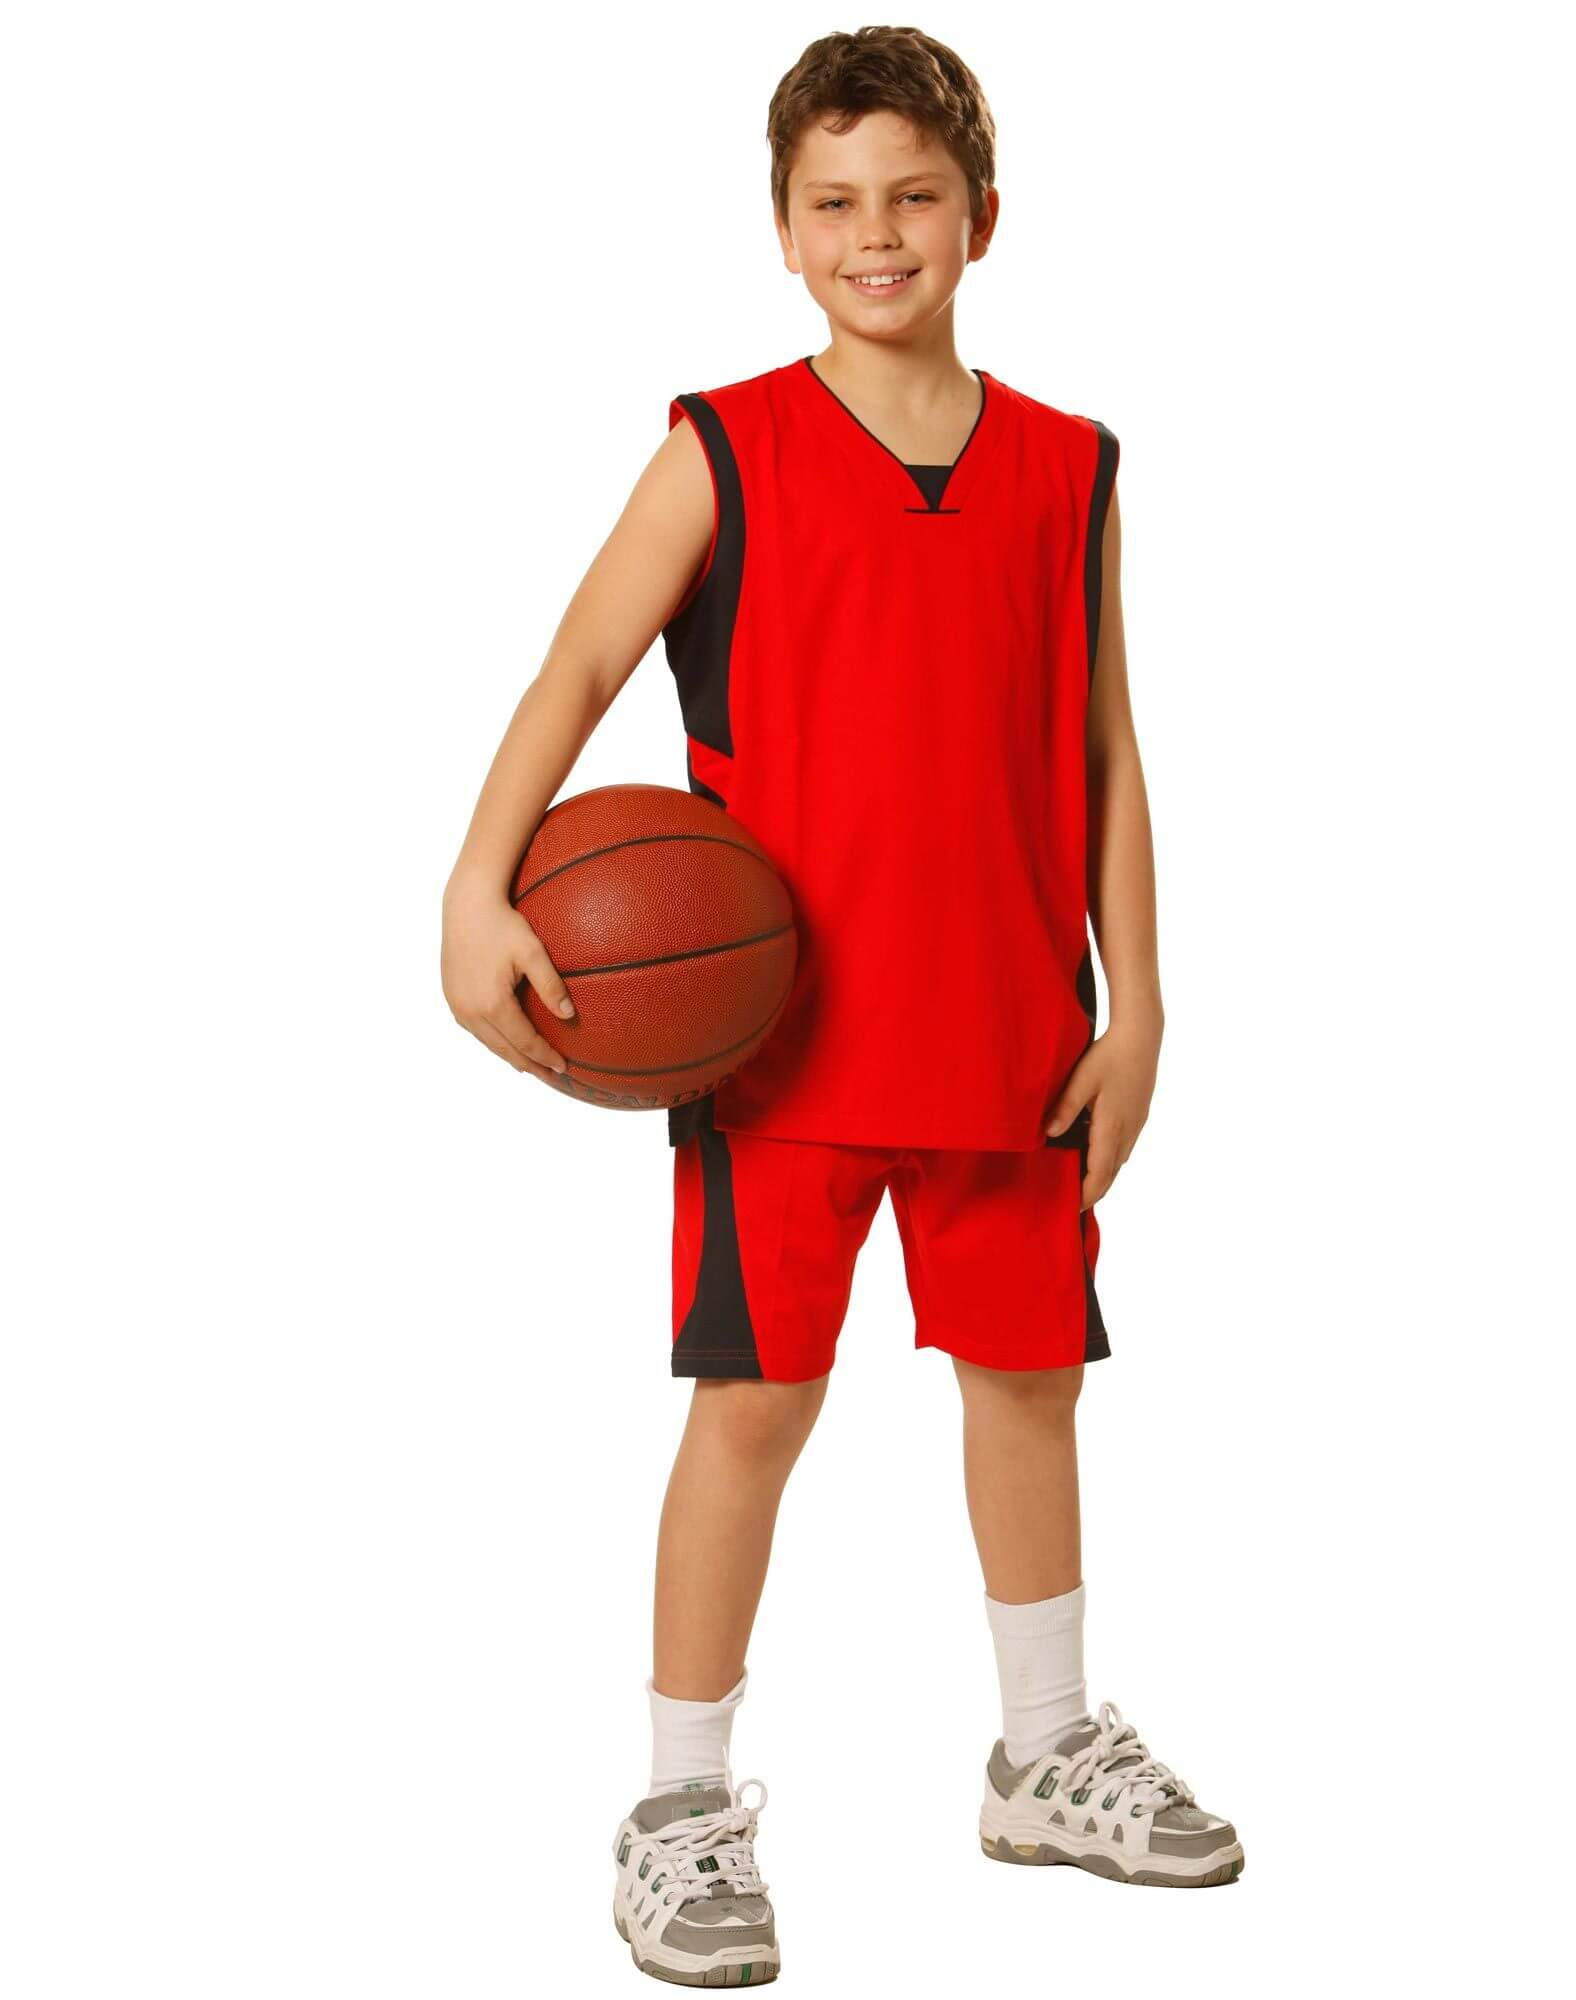 Kids Basketball Jerseys Manufacturers in Angola